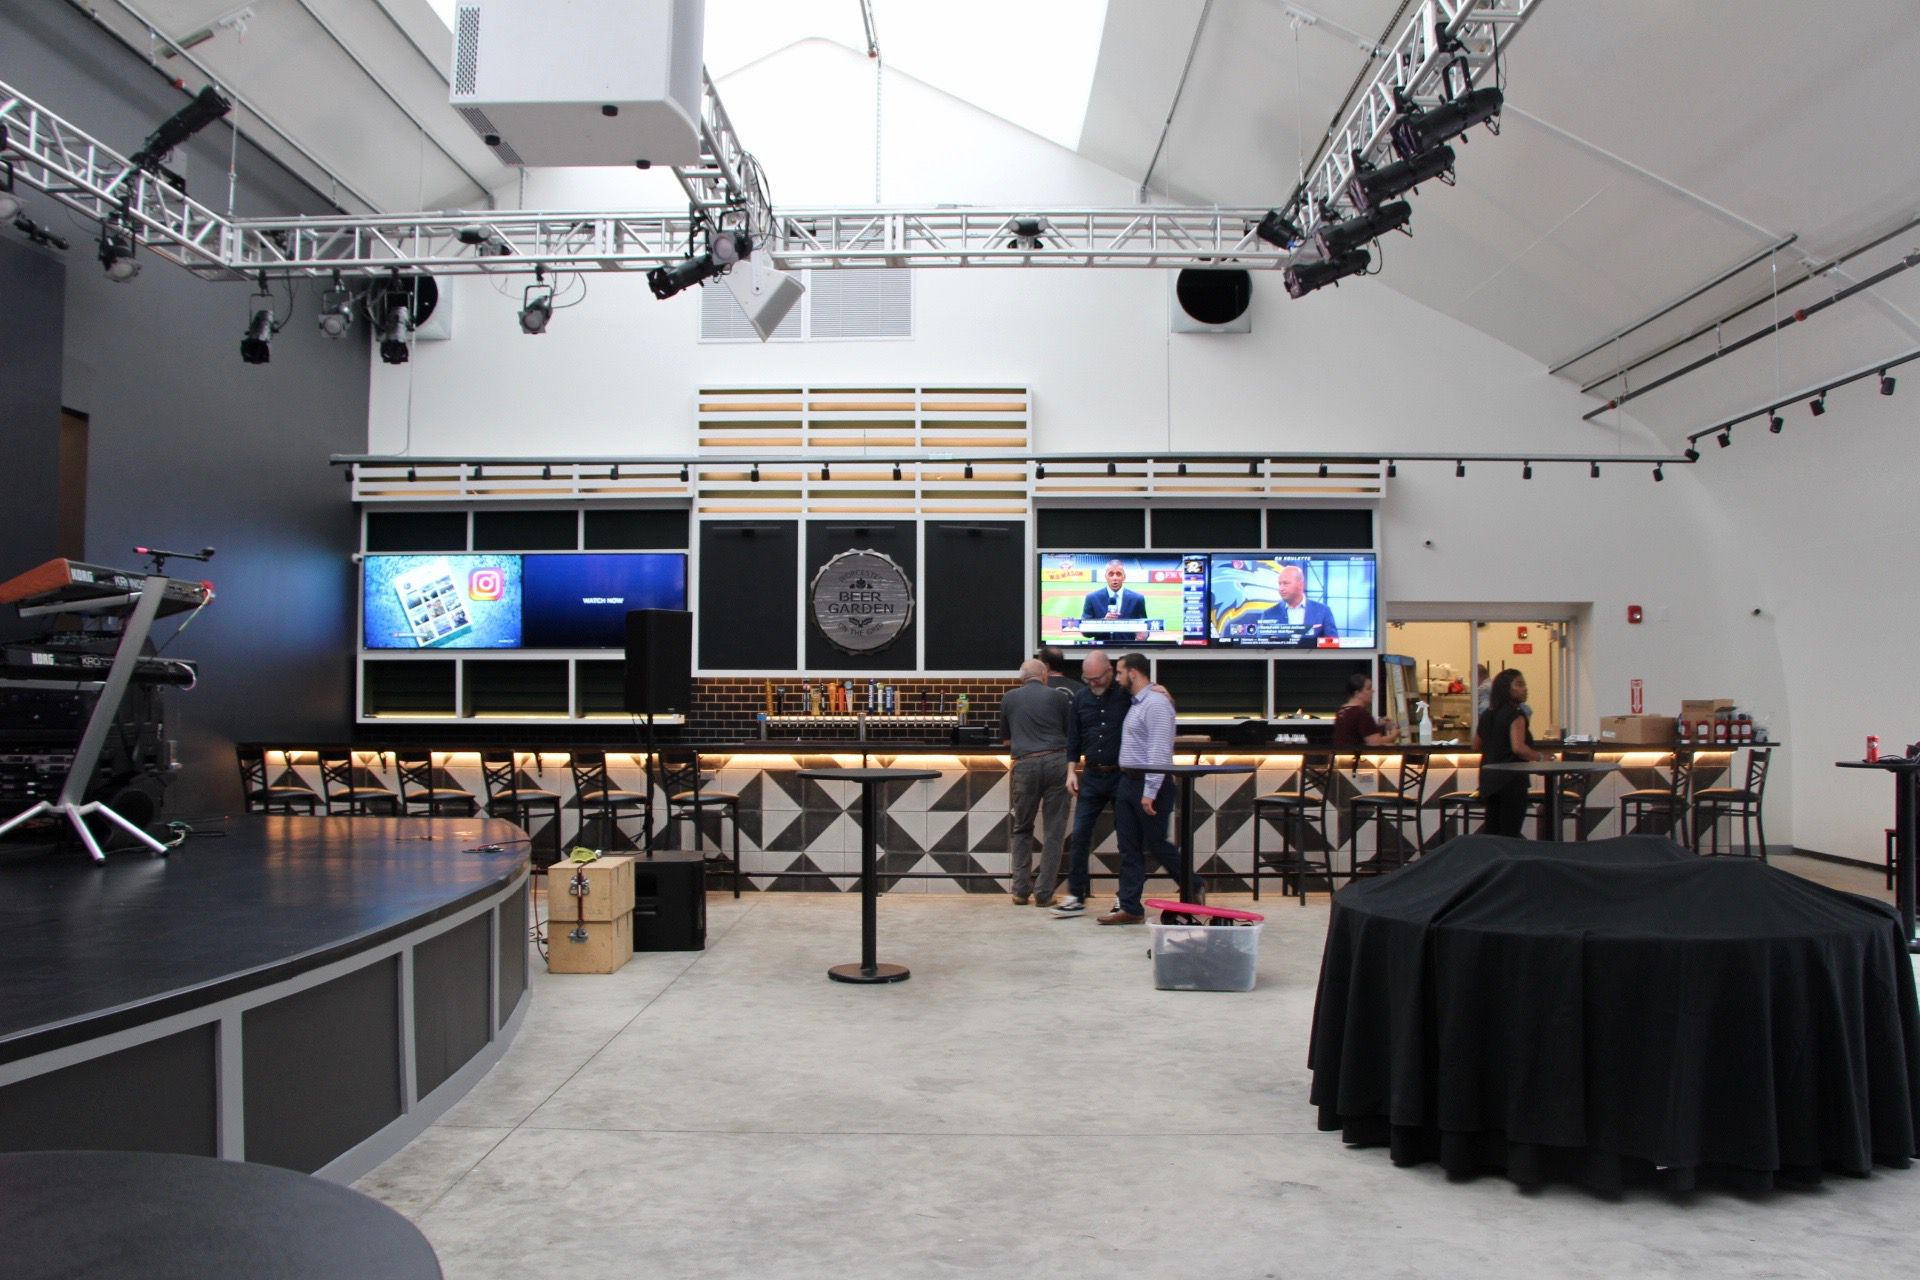 Worcester S Brew Beer Garden Pavilion With A 19 Foot Led Video